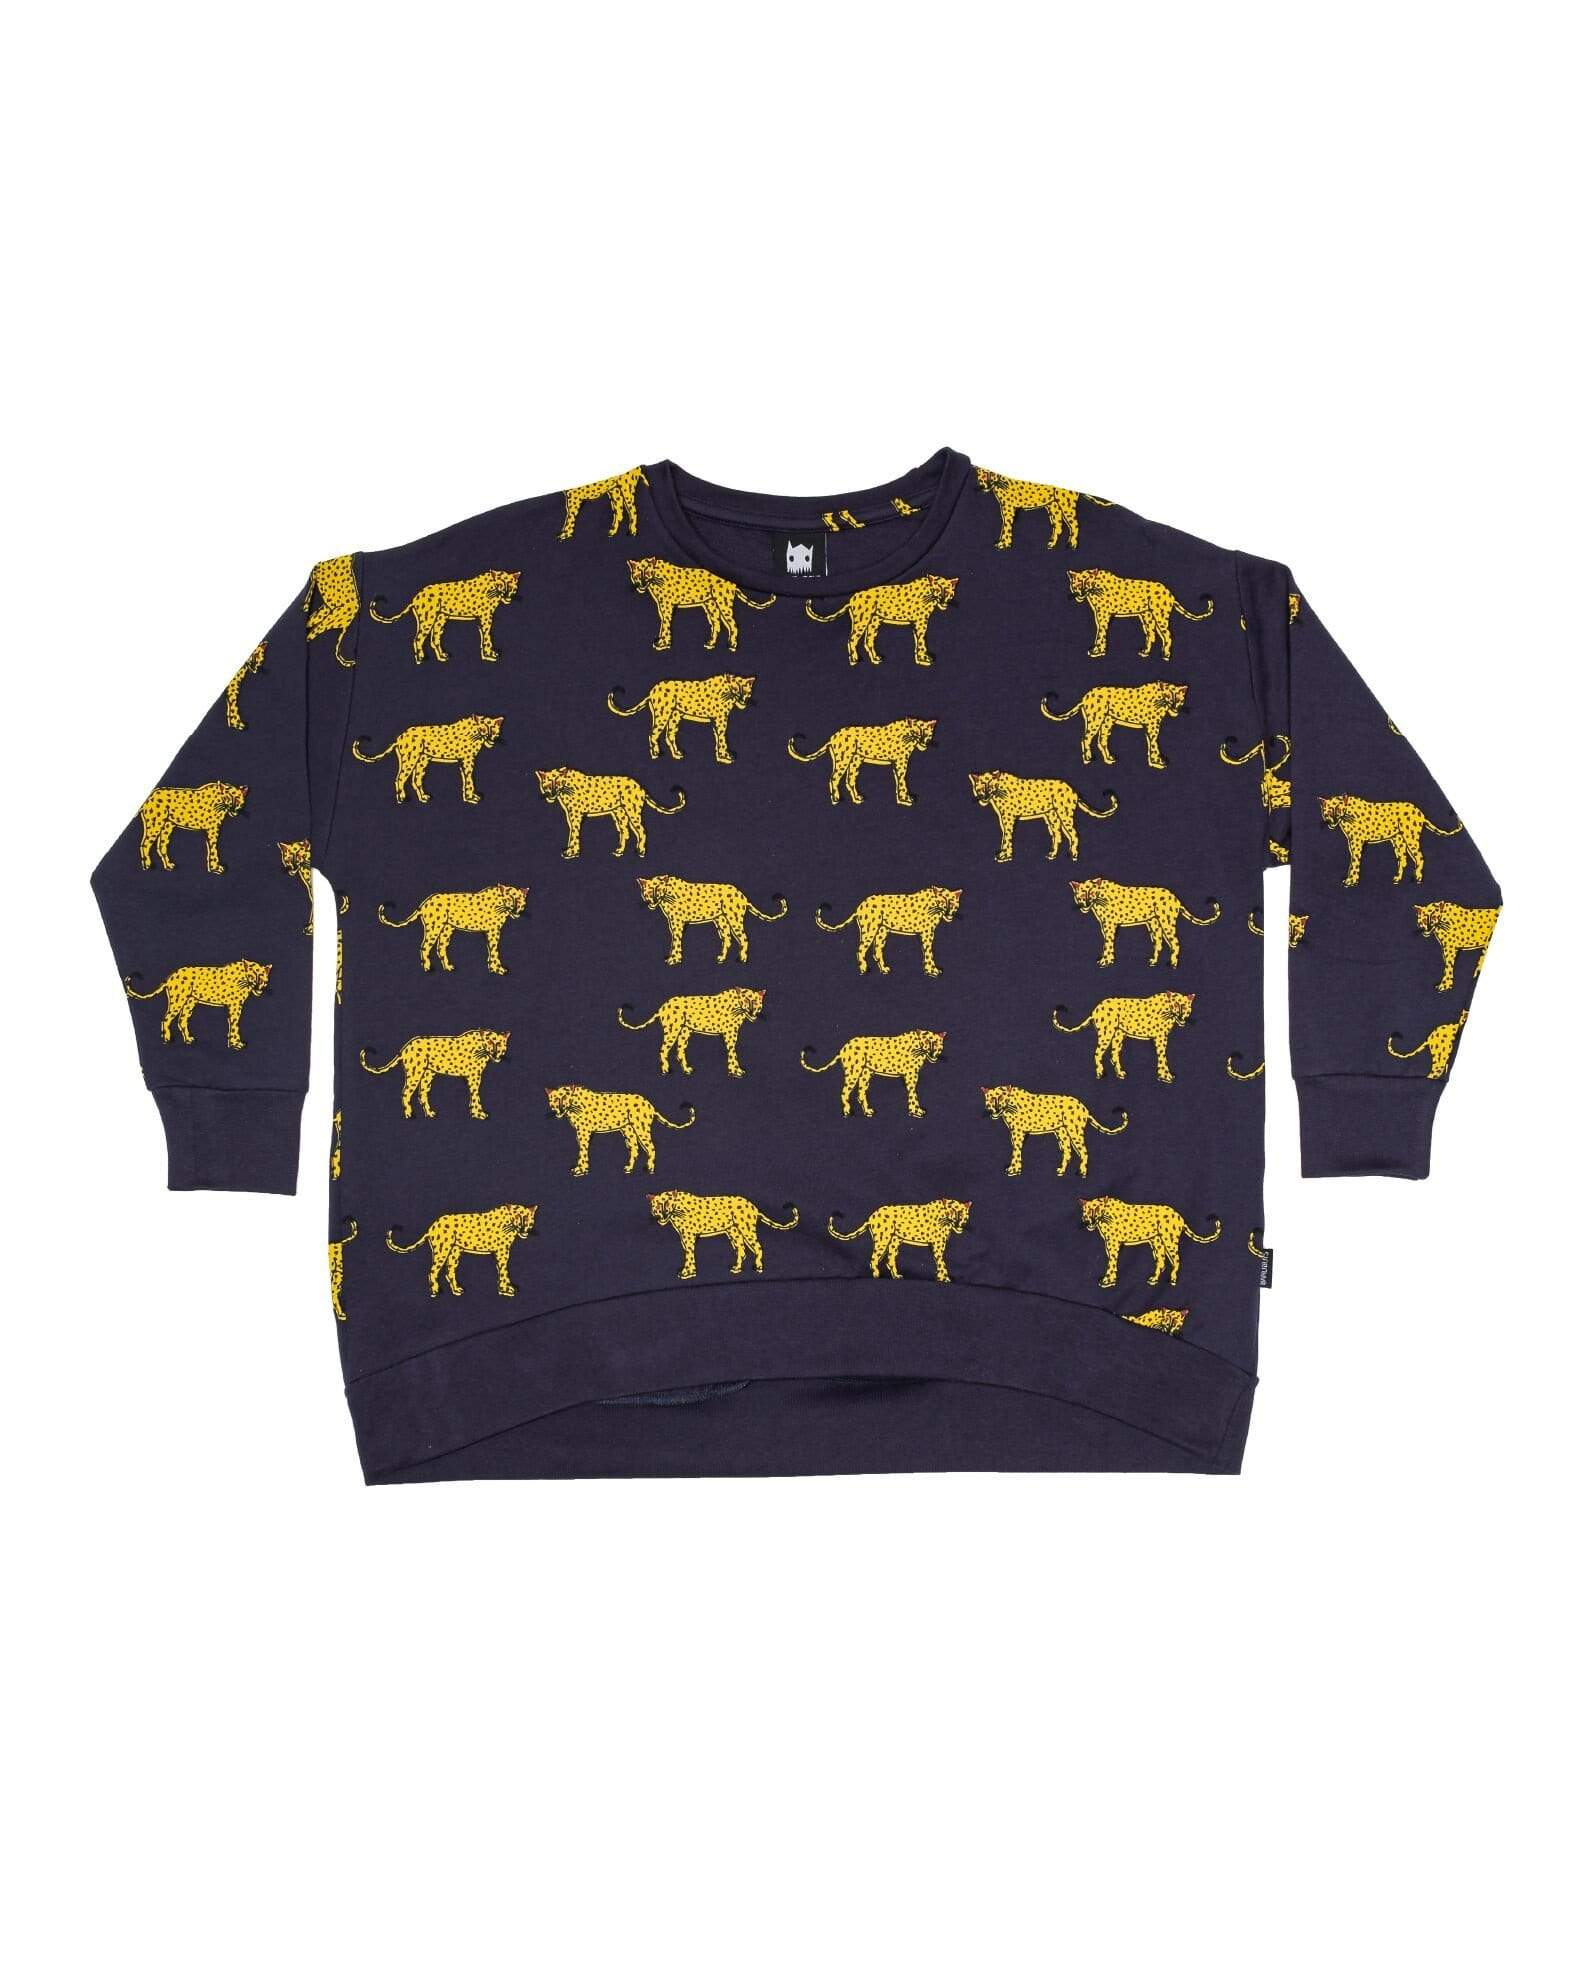 Yellow & Black Leopard Oversized Jumper - Navy